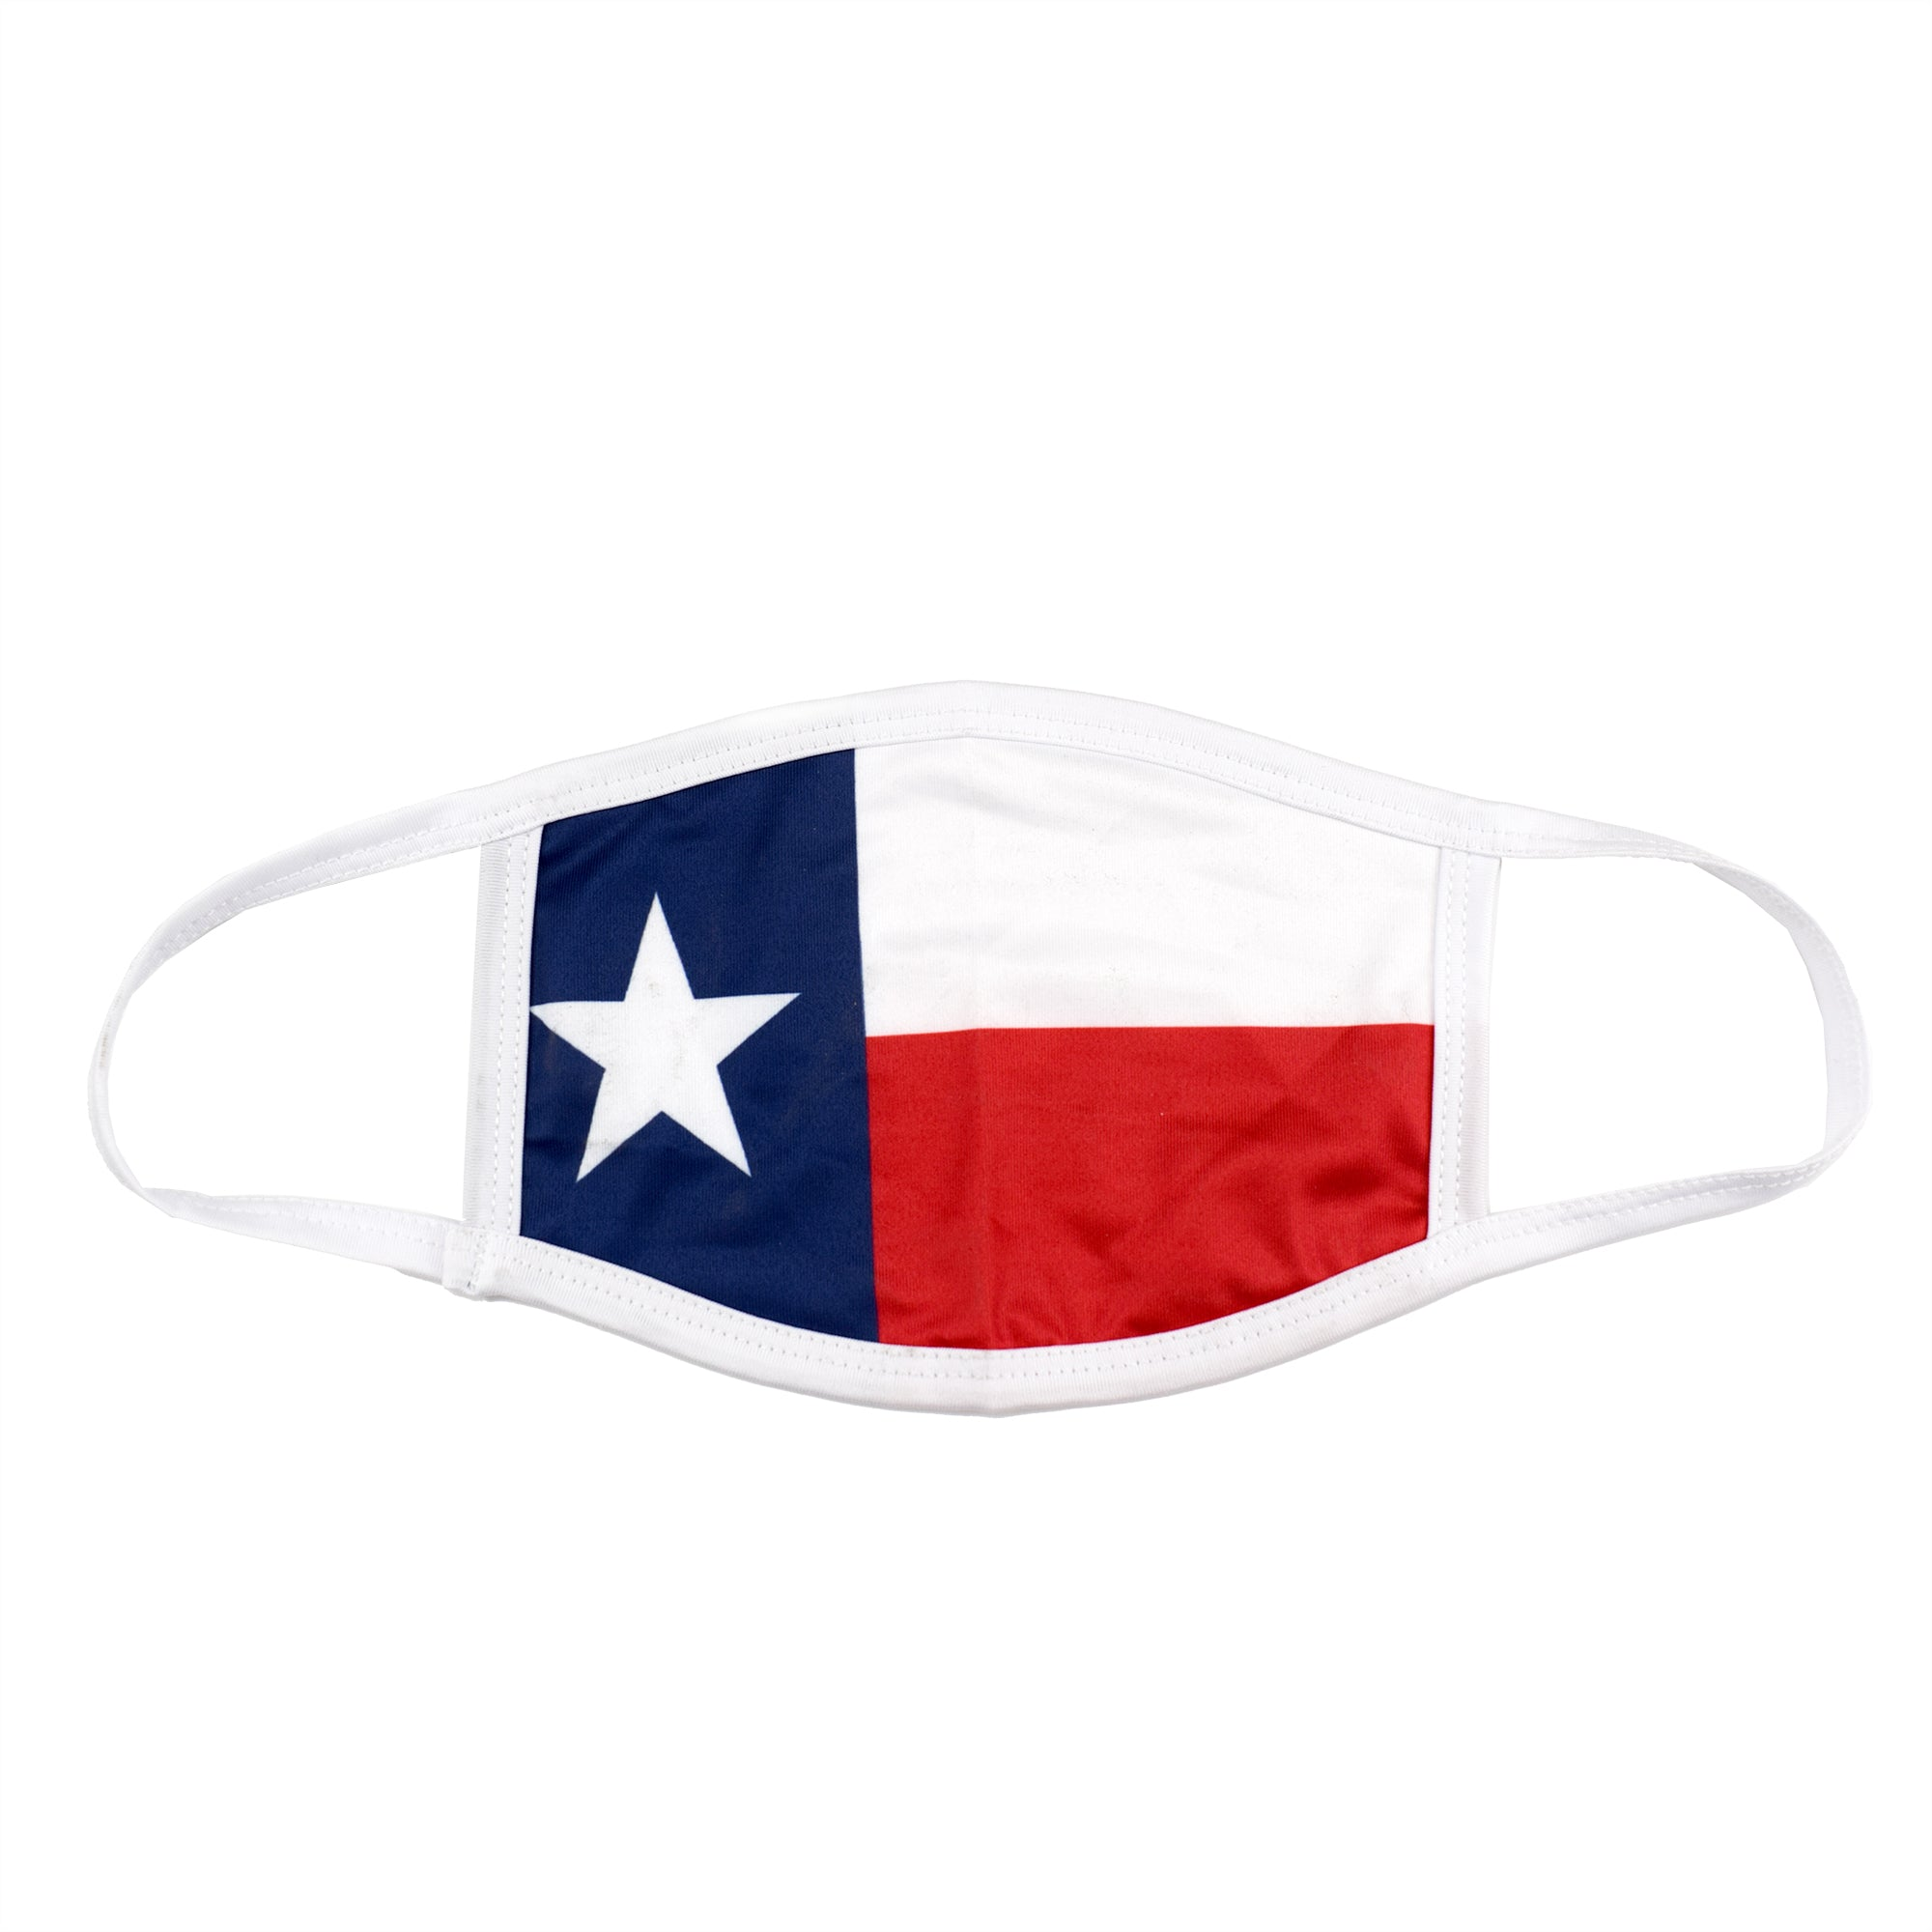 Cloth Face Covering with Texas Flag - the flag shirt